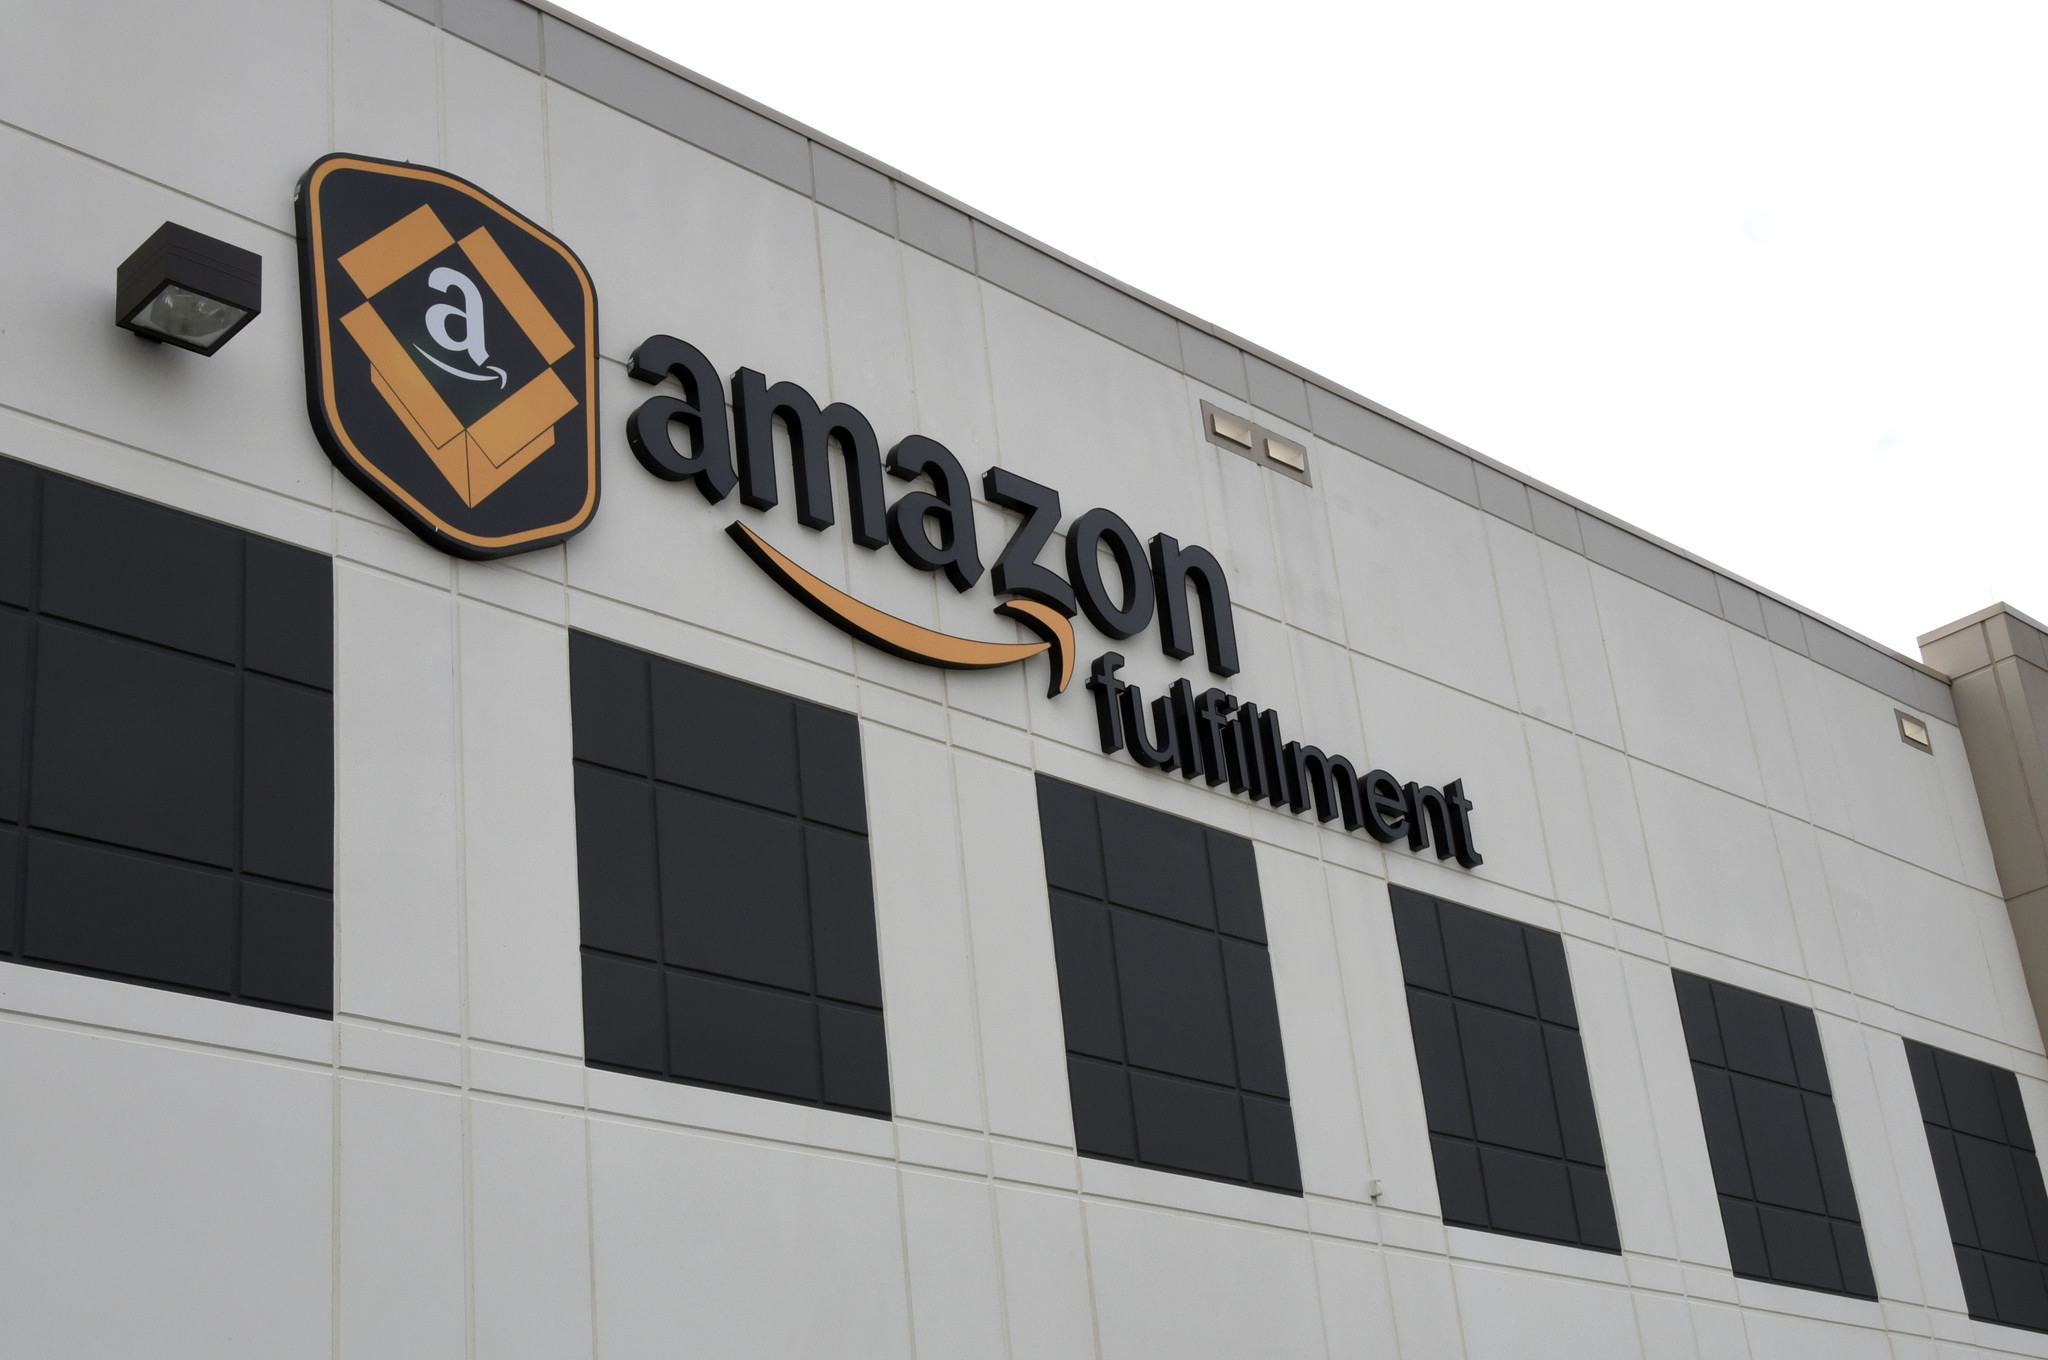 How Long Does It Take To Get A Loan >> Baltimore to loan Amazon $100K to help shuttle employees to work - Baltimore Sun